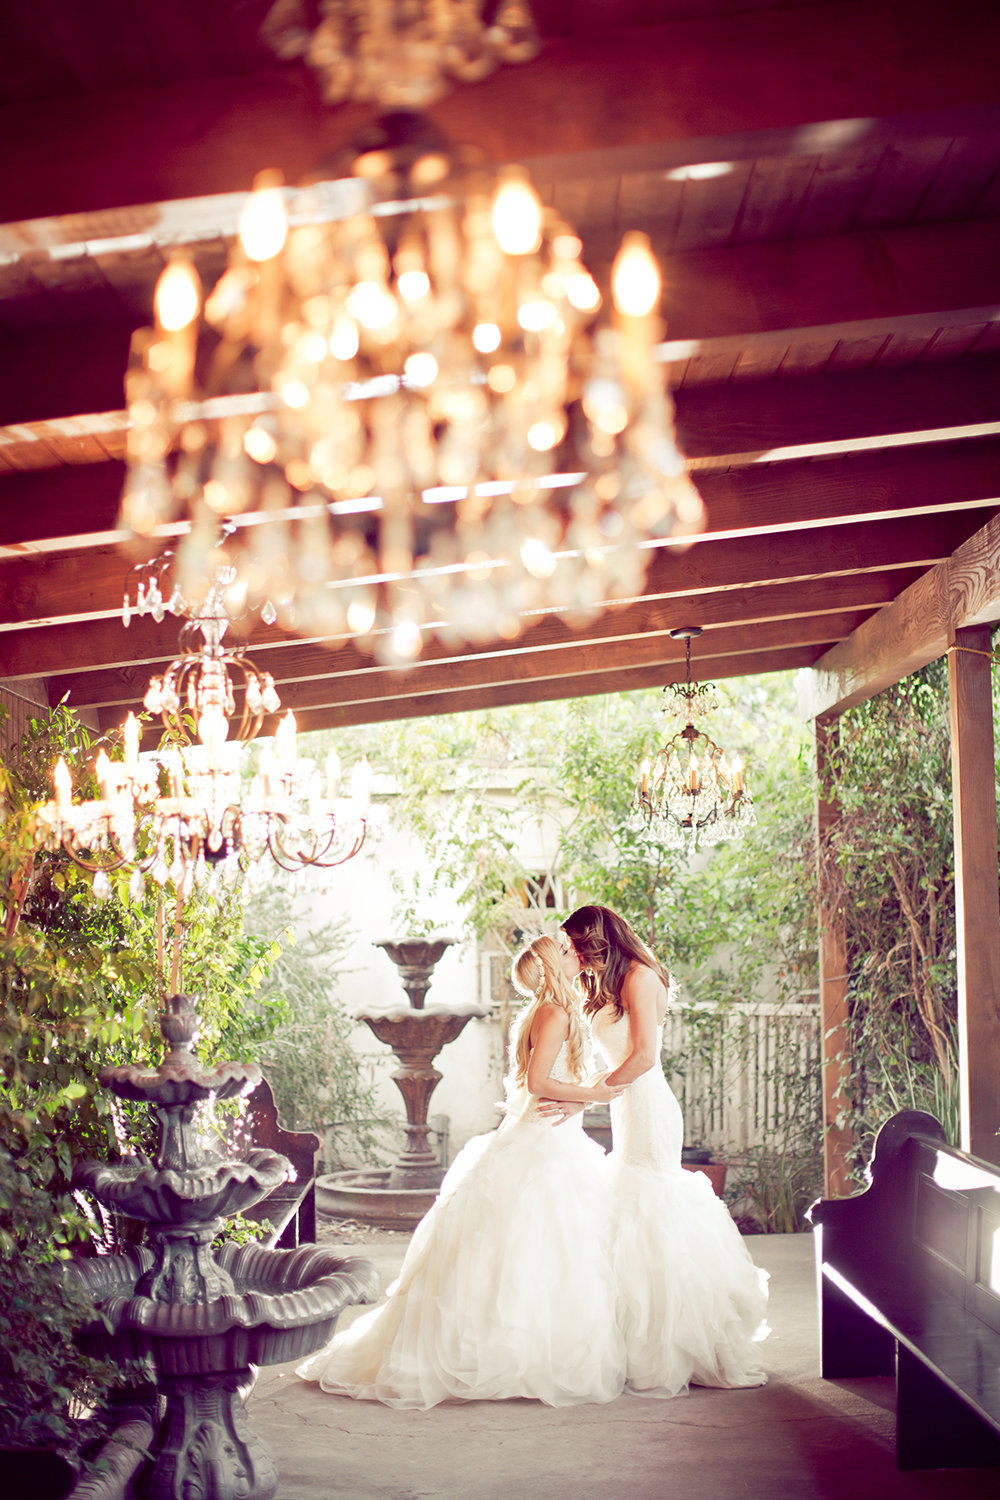 Romantic moment between two brides under chandeliers at Twin Oaks Garden Estate